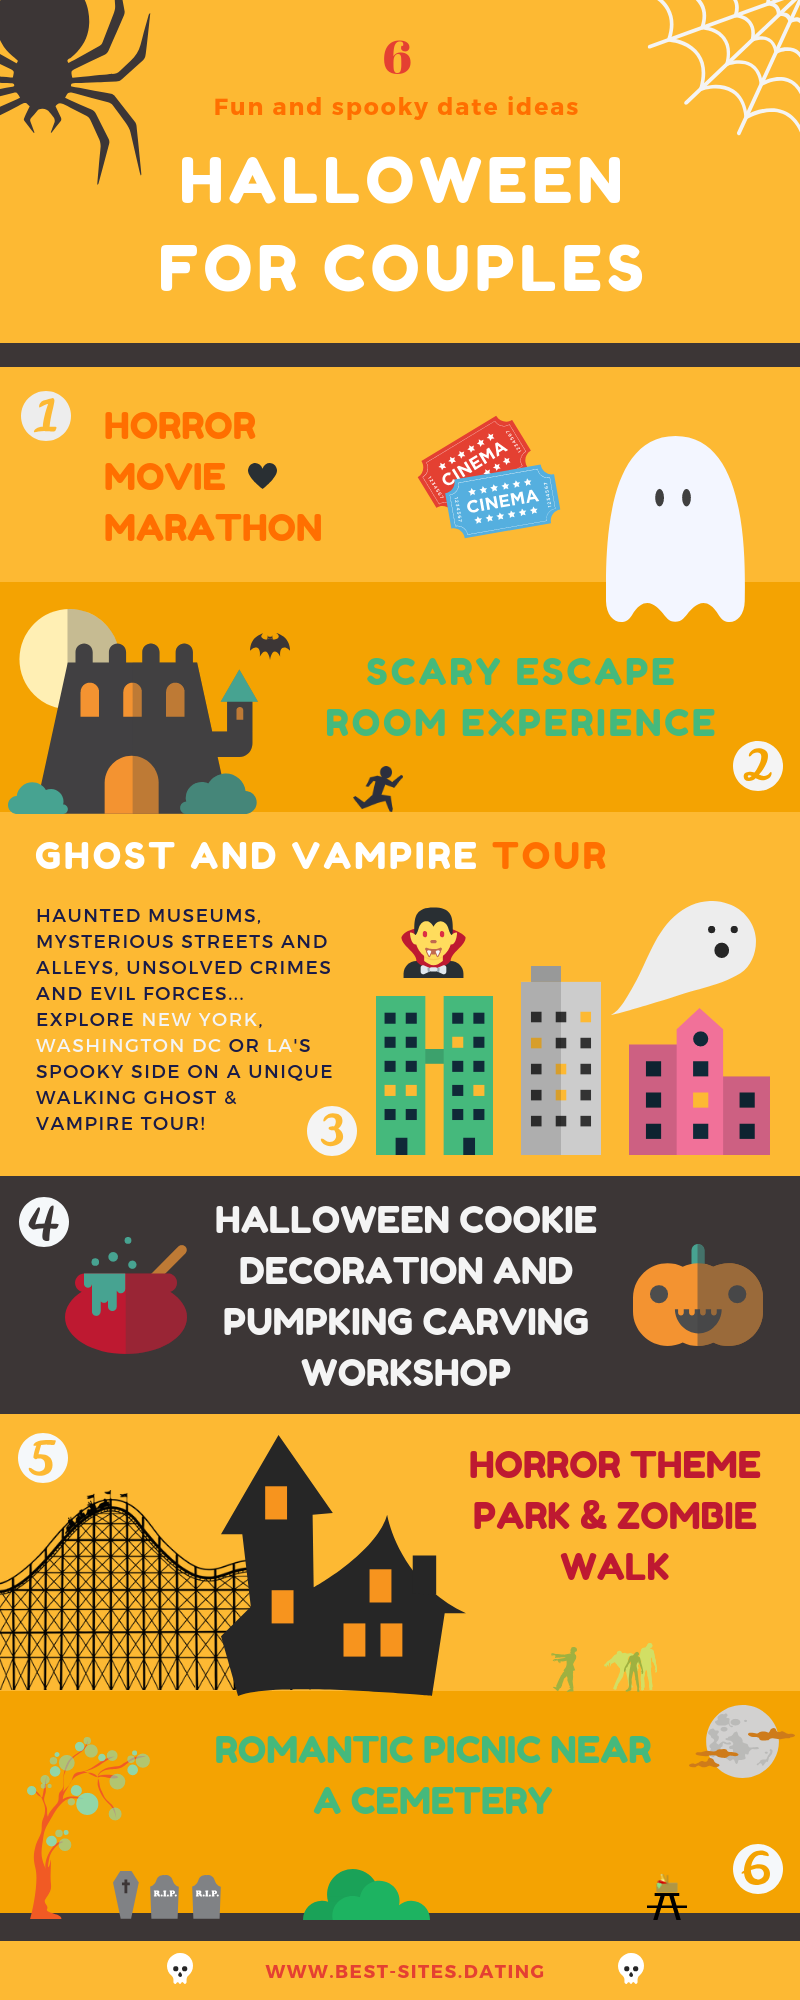 halloween for couples: spooky date ideas [infographic]